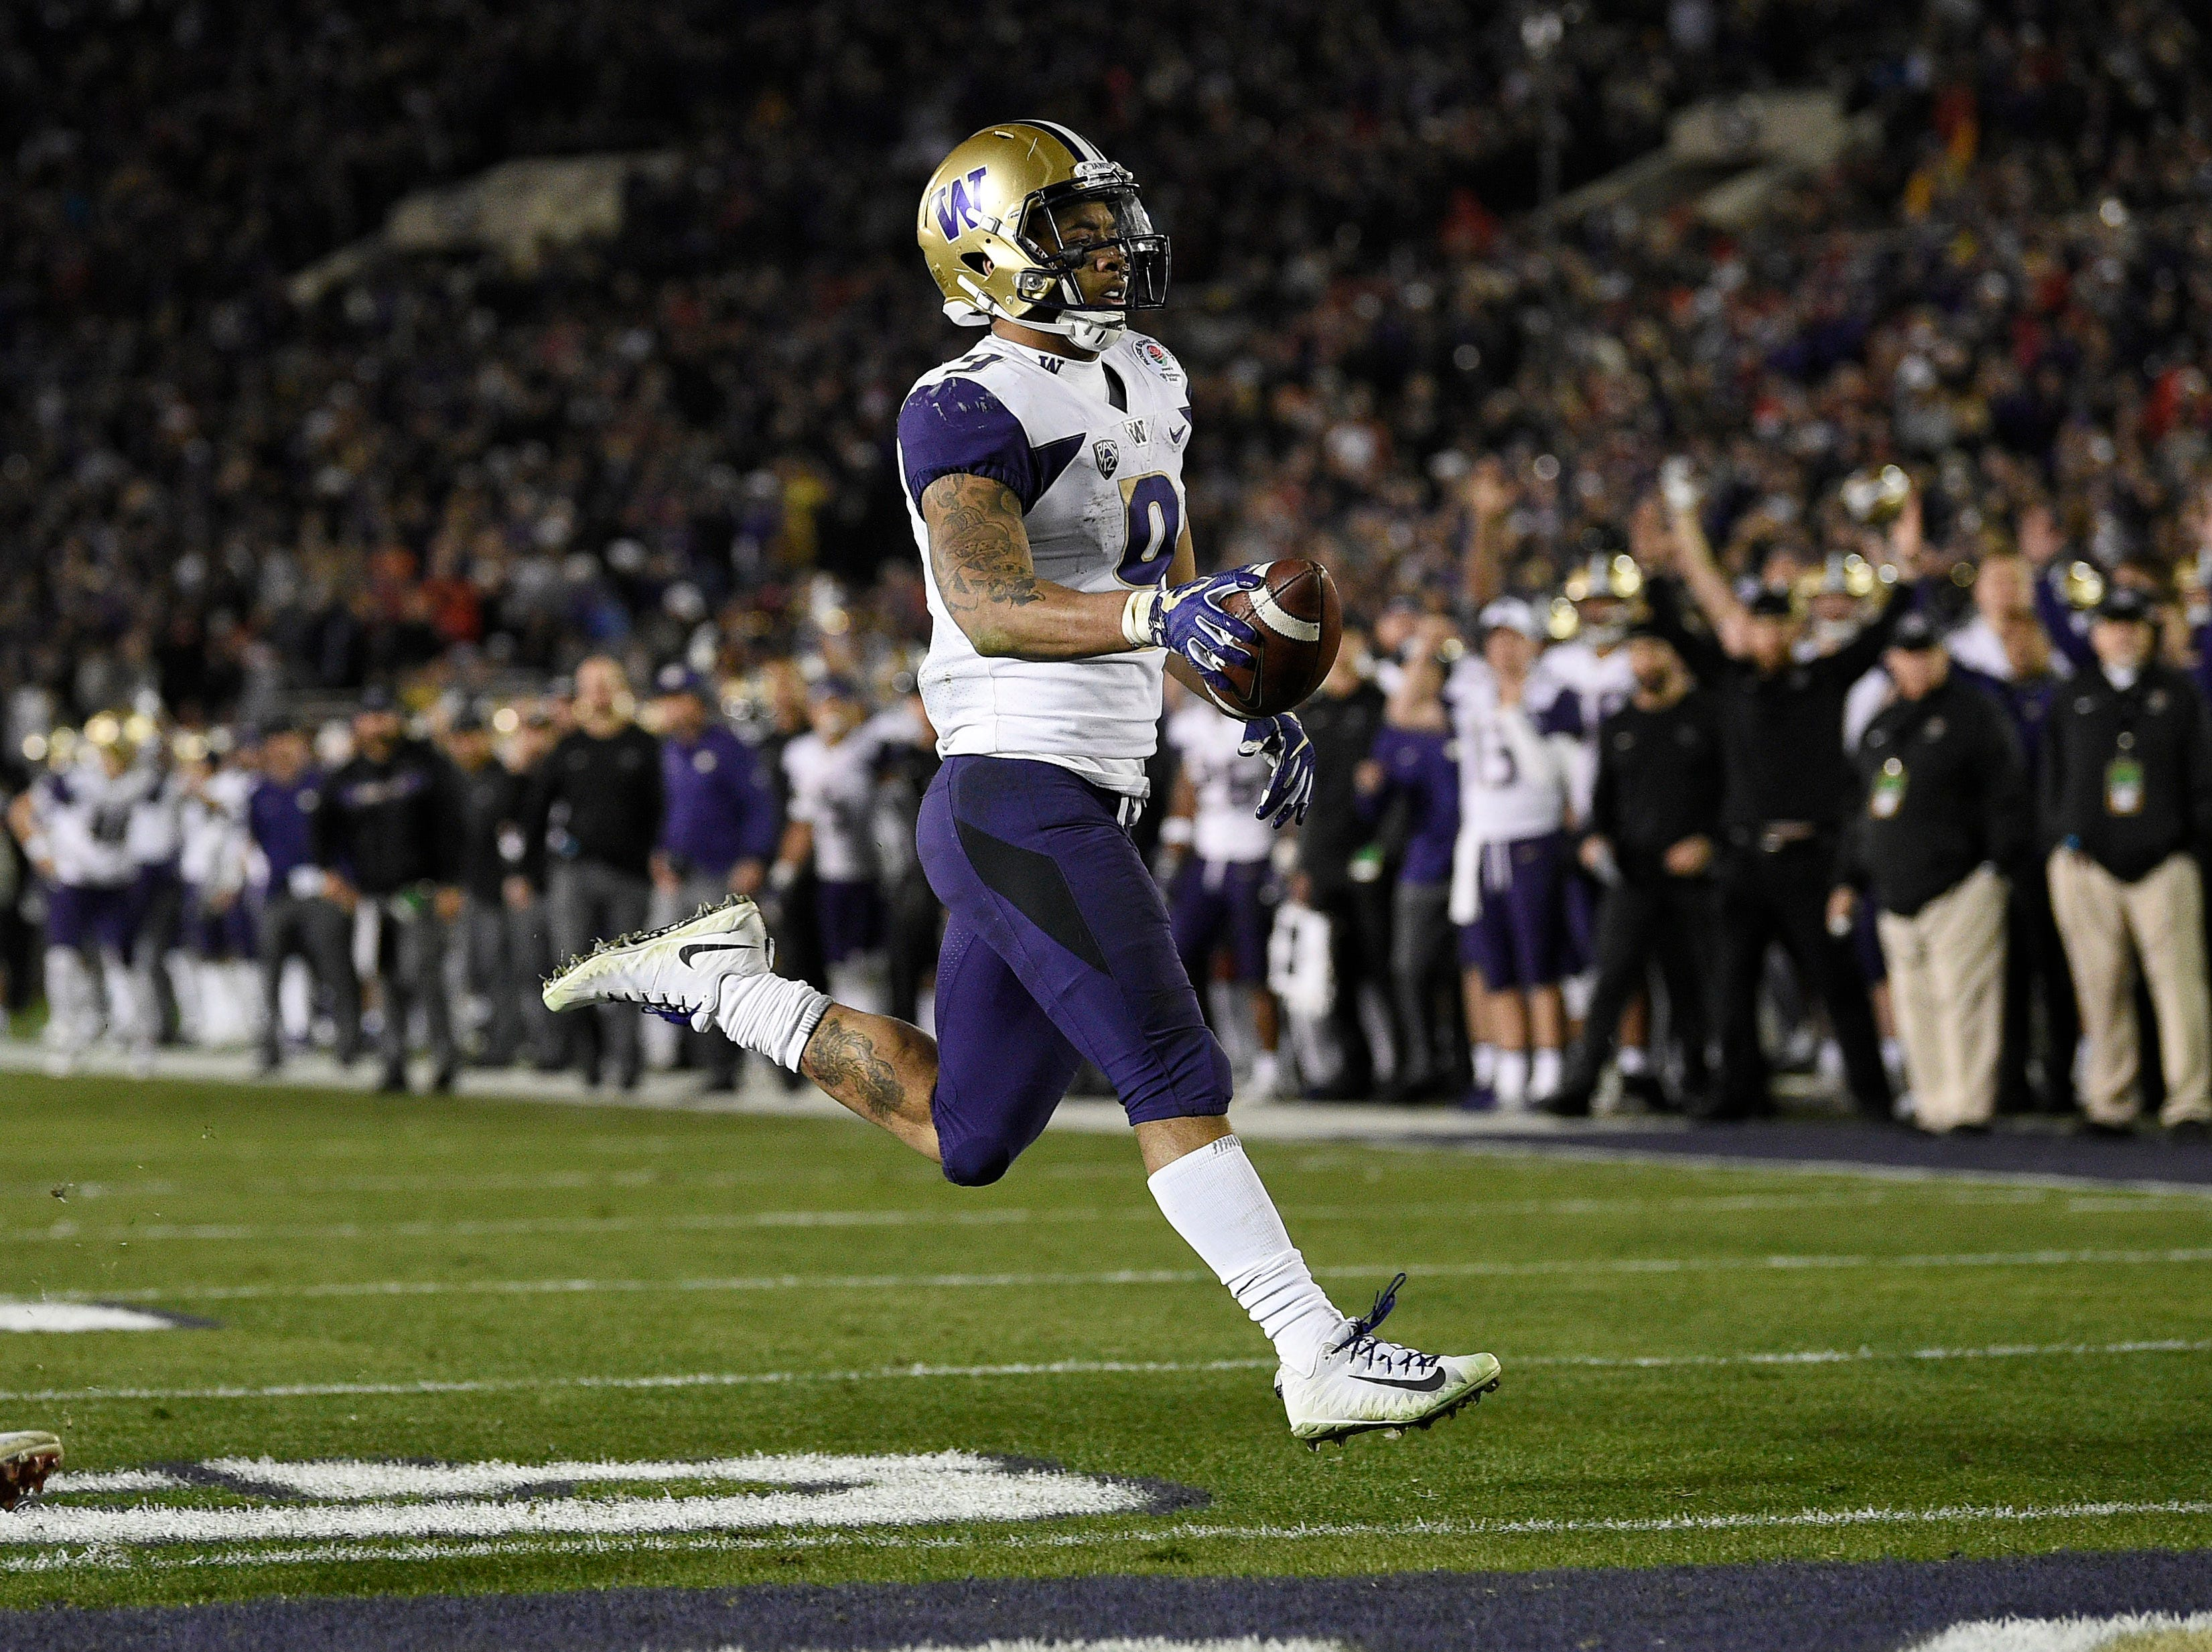 Washington Huskies running back Myles Gaskin (9) runs in a touchdown against the Ohio State Buckeyes in the fourth quarter in the Rose Bowl.